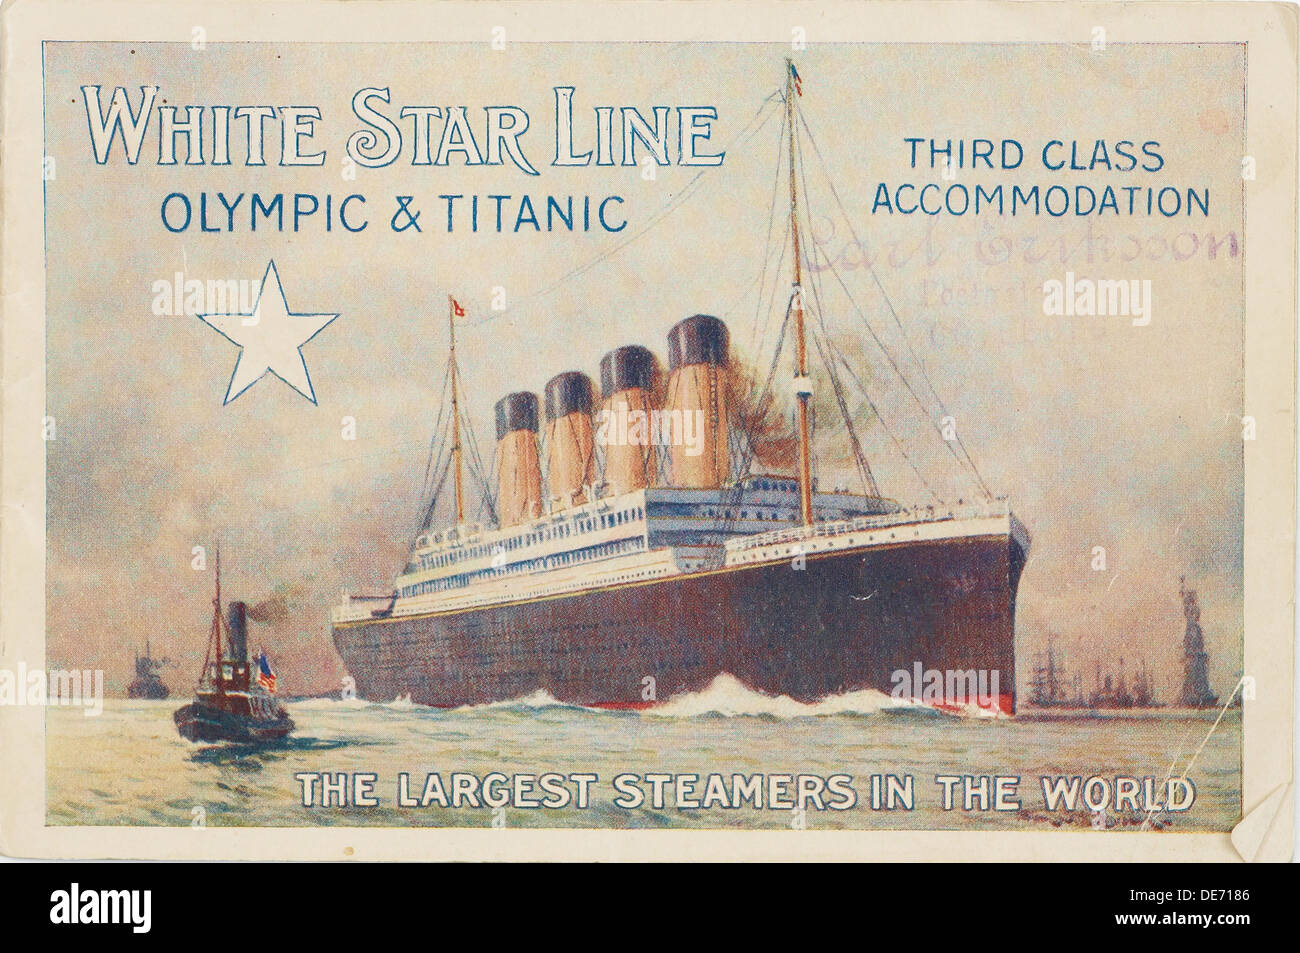 White Star Line. Titanic & Olympic, c. 1910. Artist: Anonymous - Stock Image